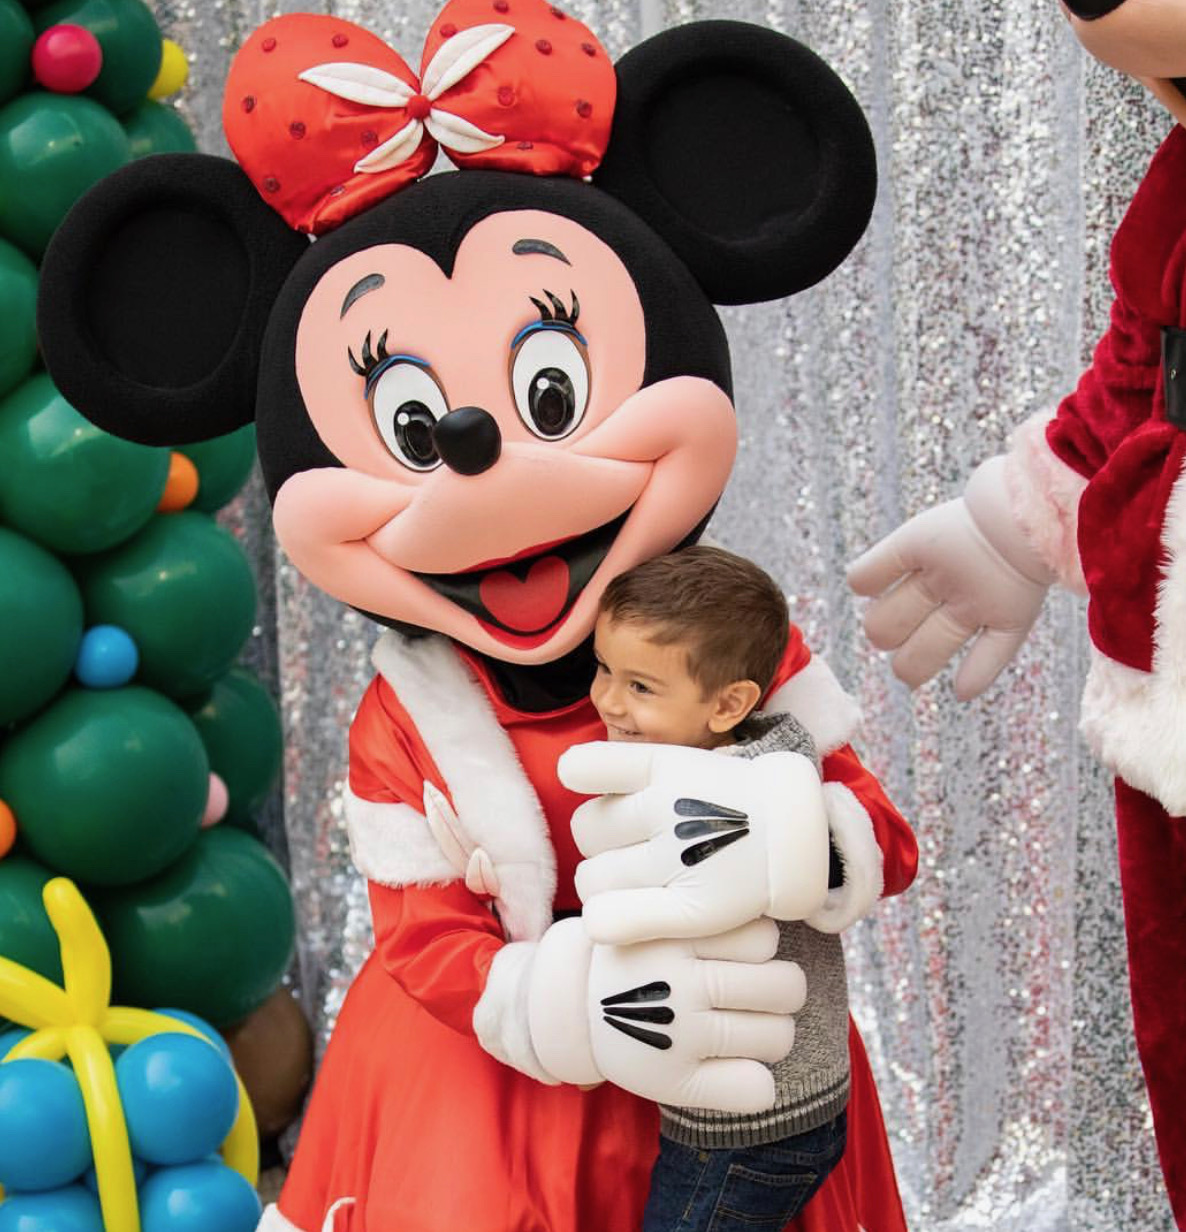 Holiday Minnie at Christmas event